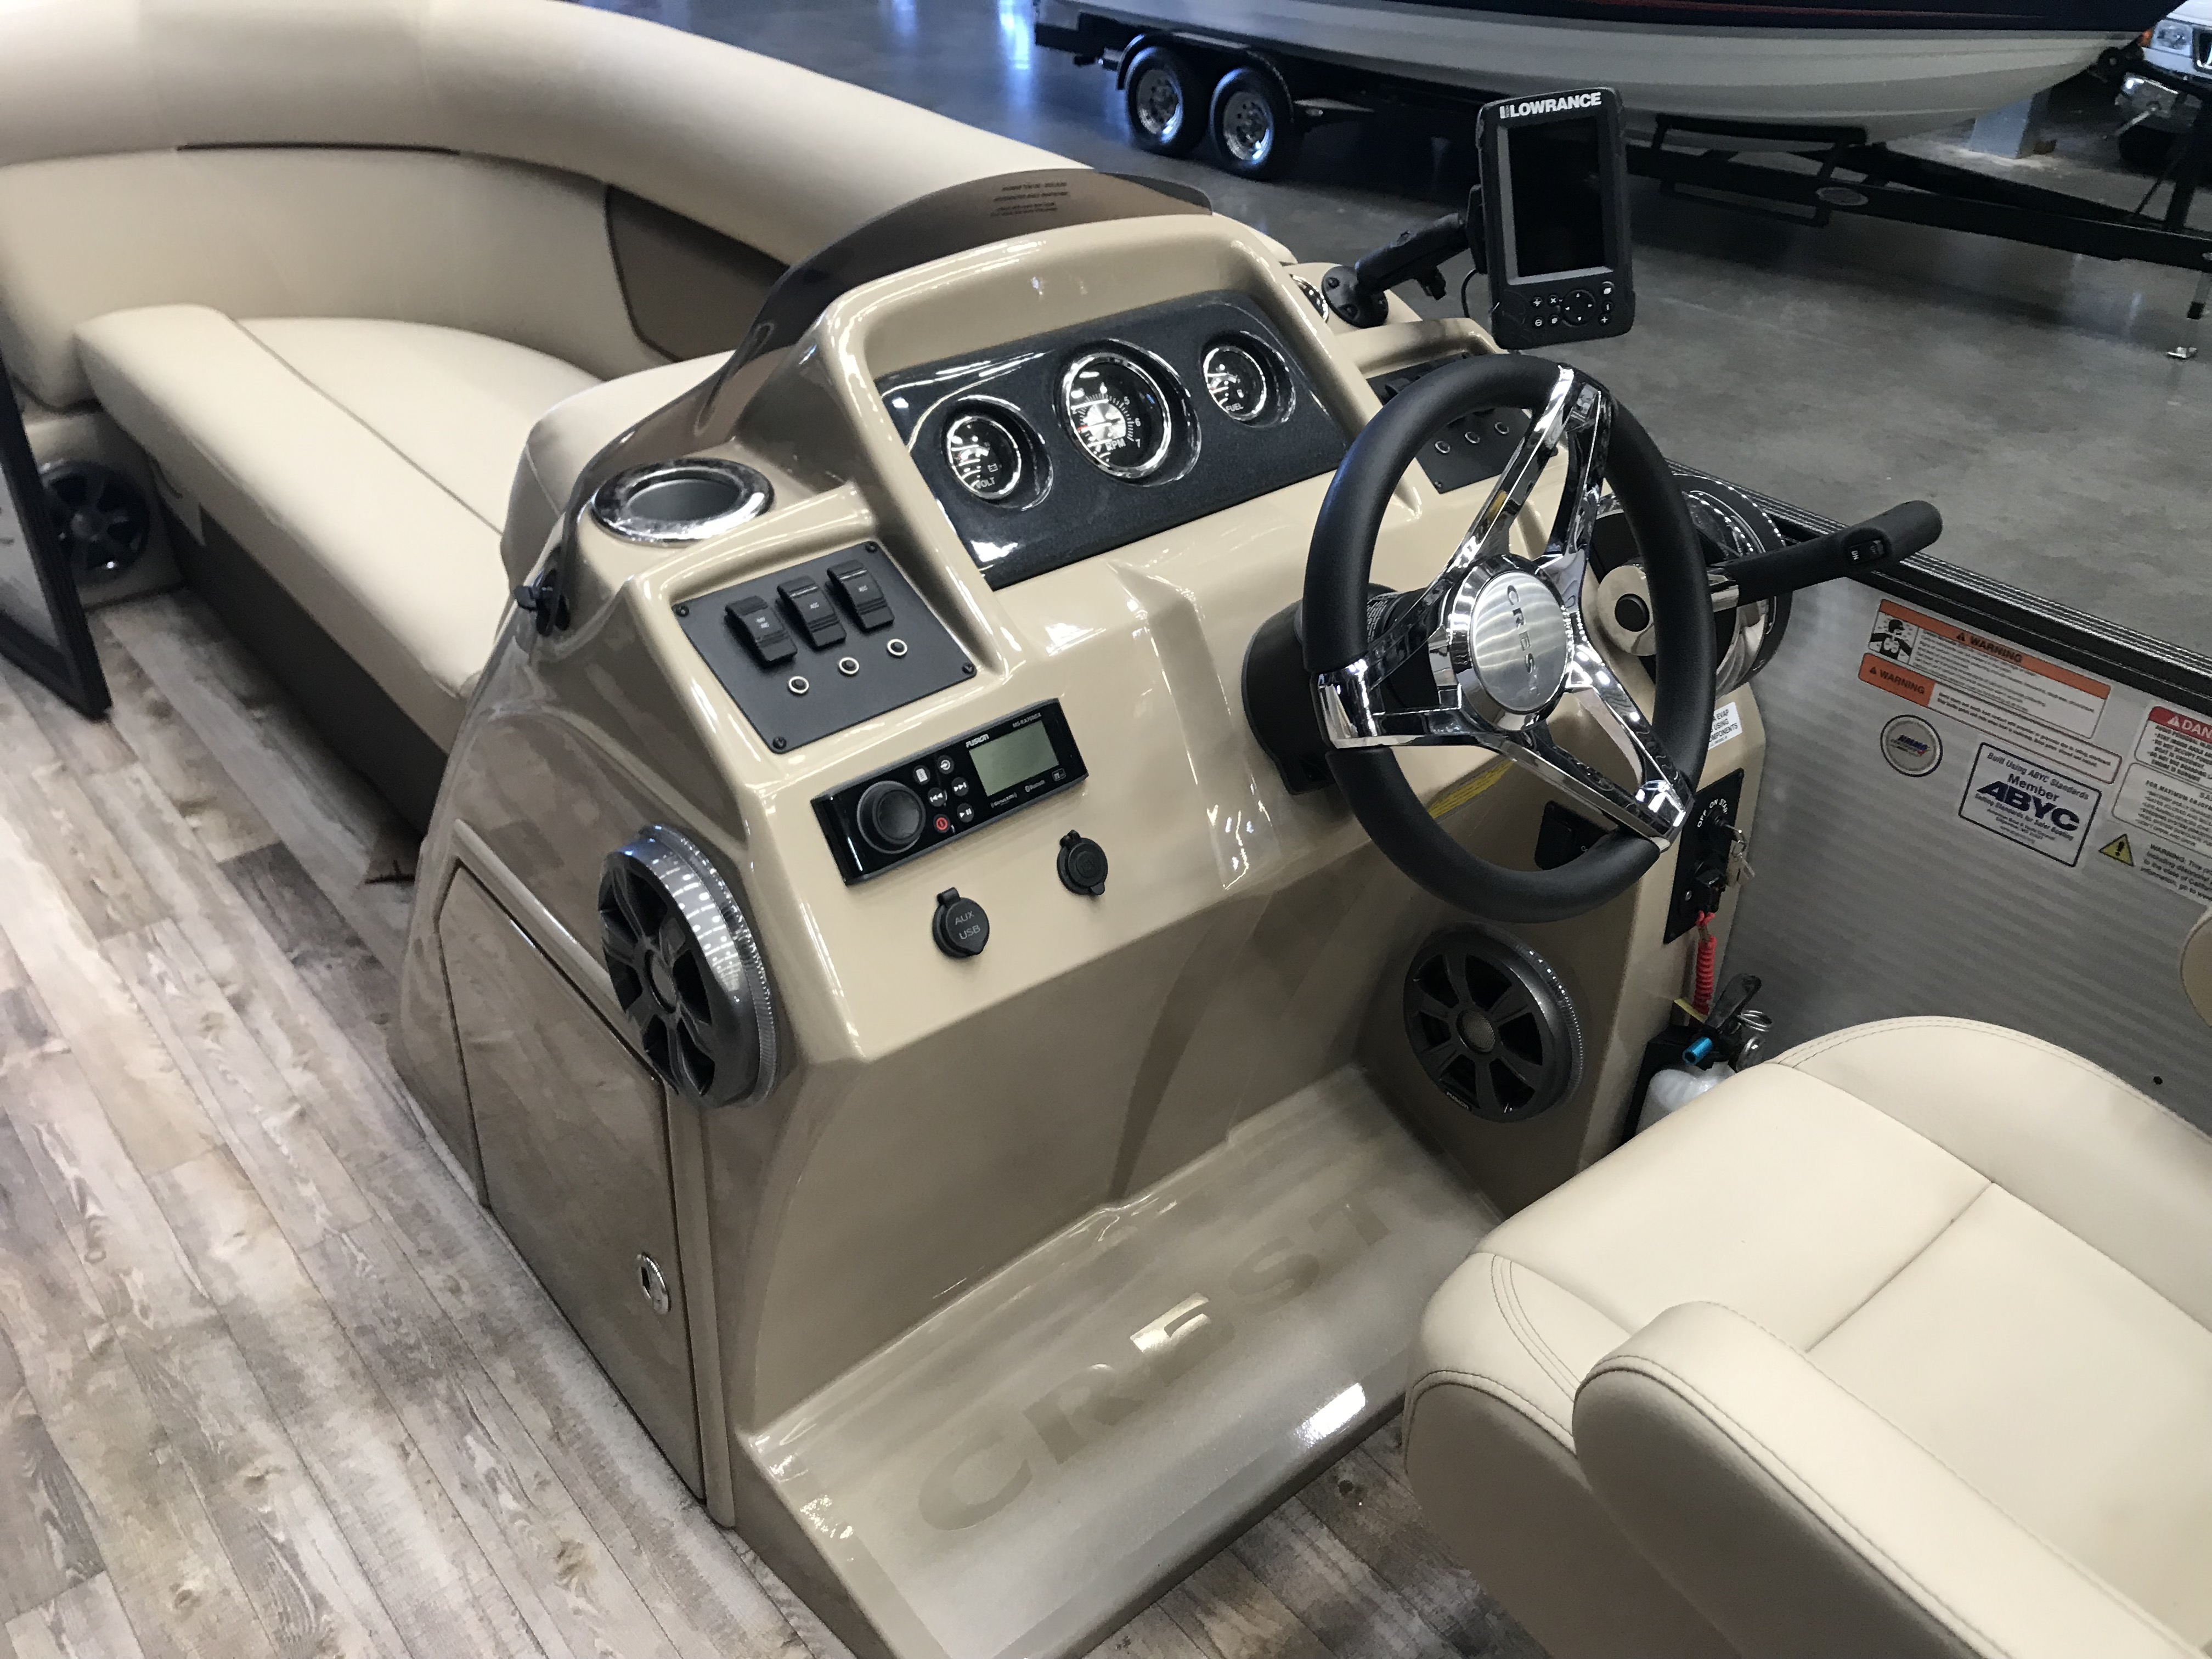 2019 Crest boat for sale, model of the boat is CREST I 200 L & Image # 241 of 480